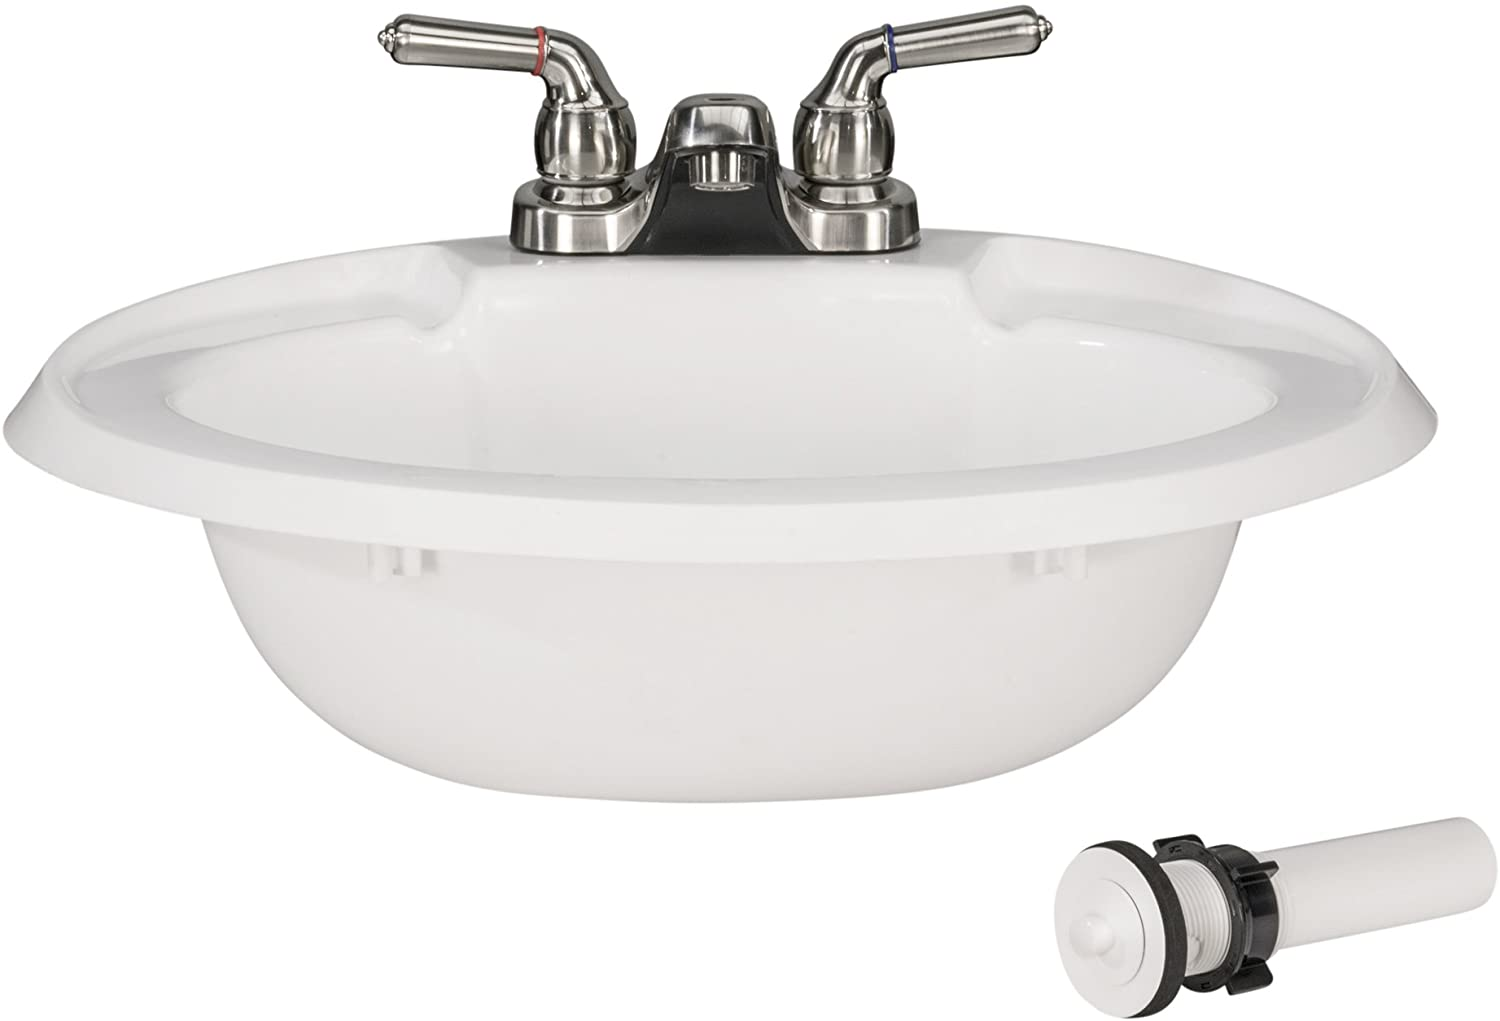 RecPro Oval RV Bathroom Sink w/Drain Stopper and Brushed Nickel Teapot Faucet | White | Single Bowl Lavatory Sink | Camper Sink | 20x17 | Plastic